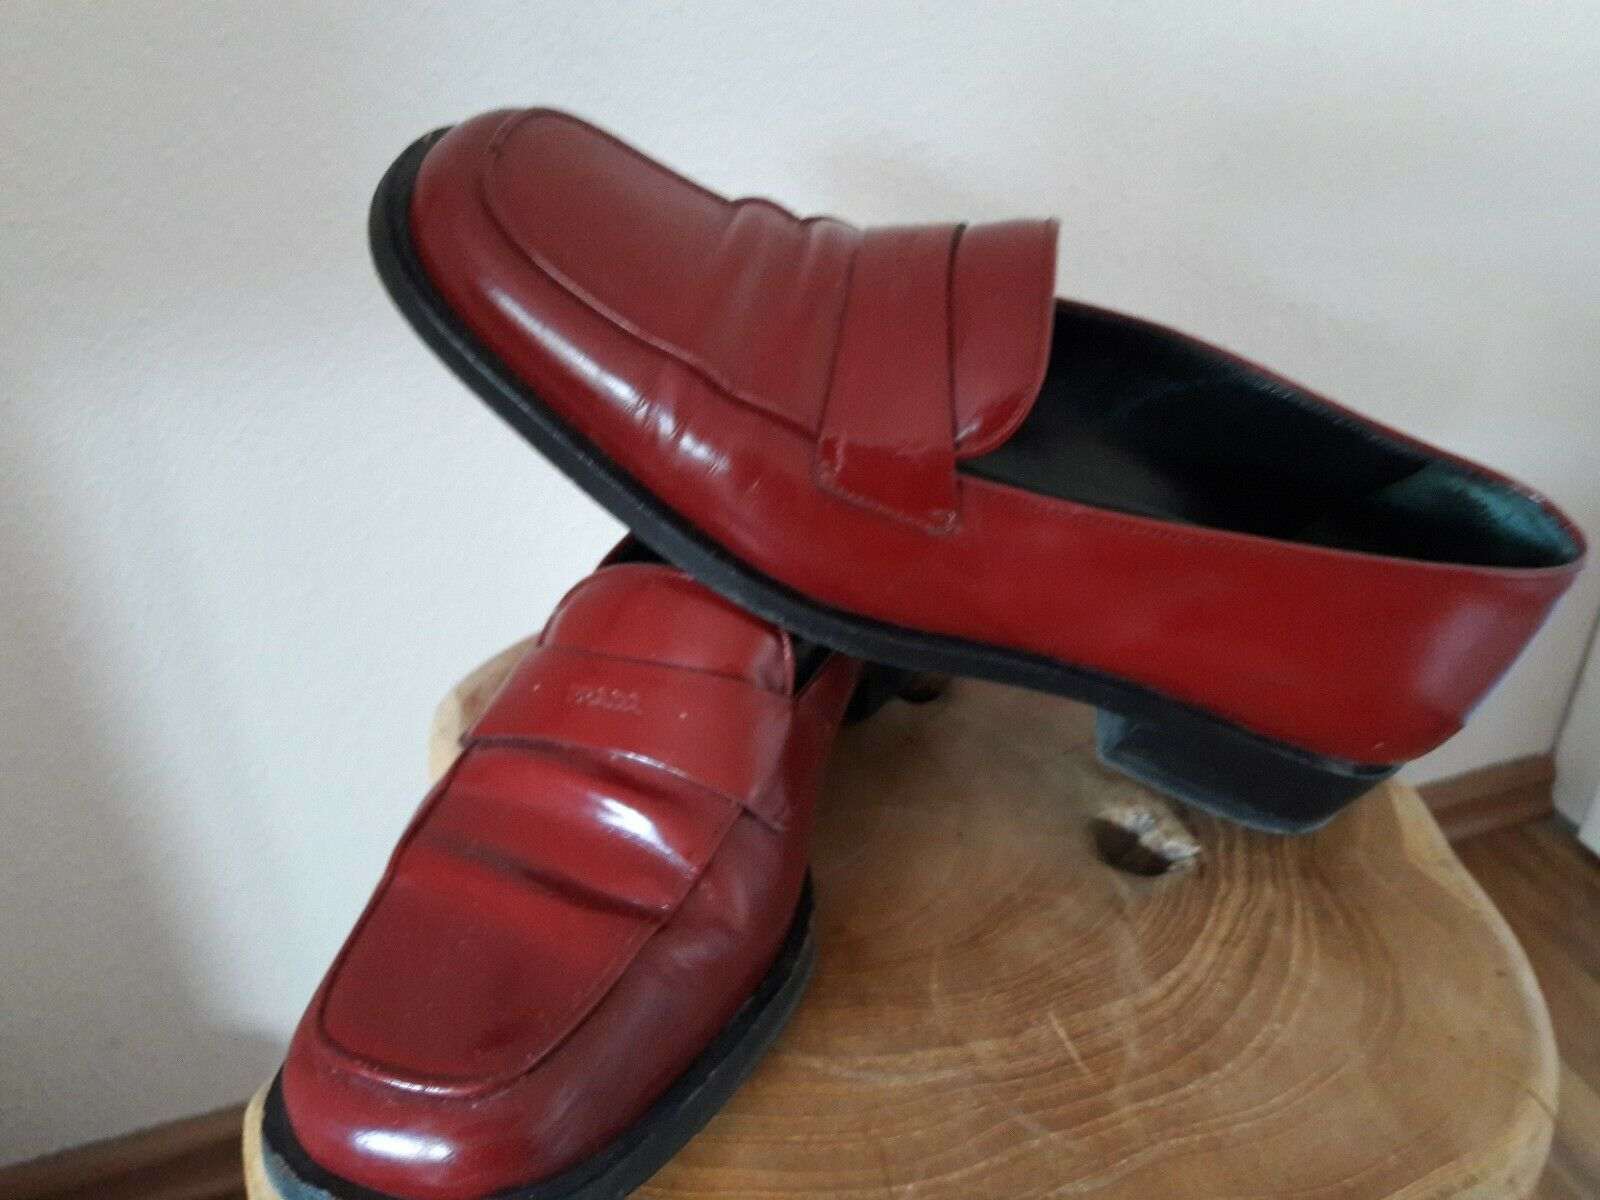 Prada Damen Slipper in weinrot  Gr.37,5 Top Zustand